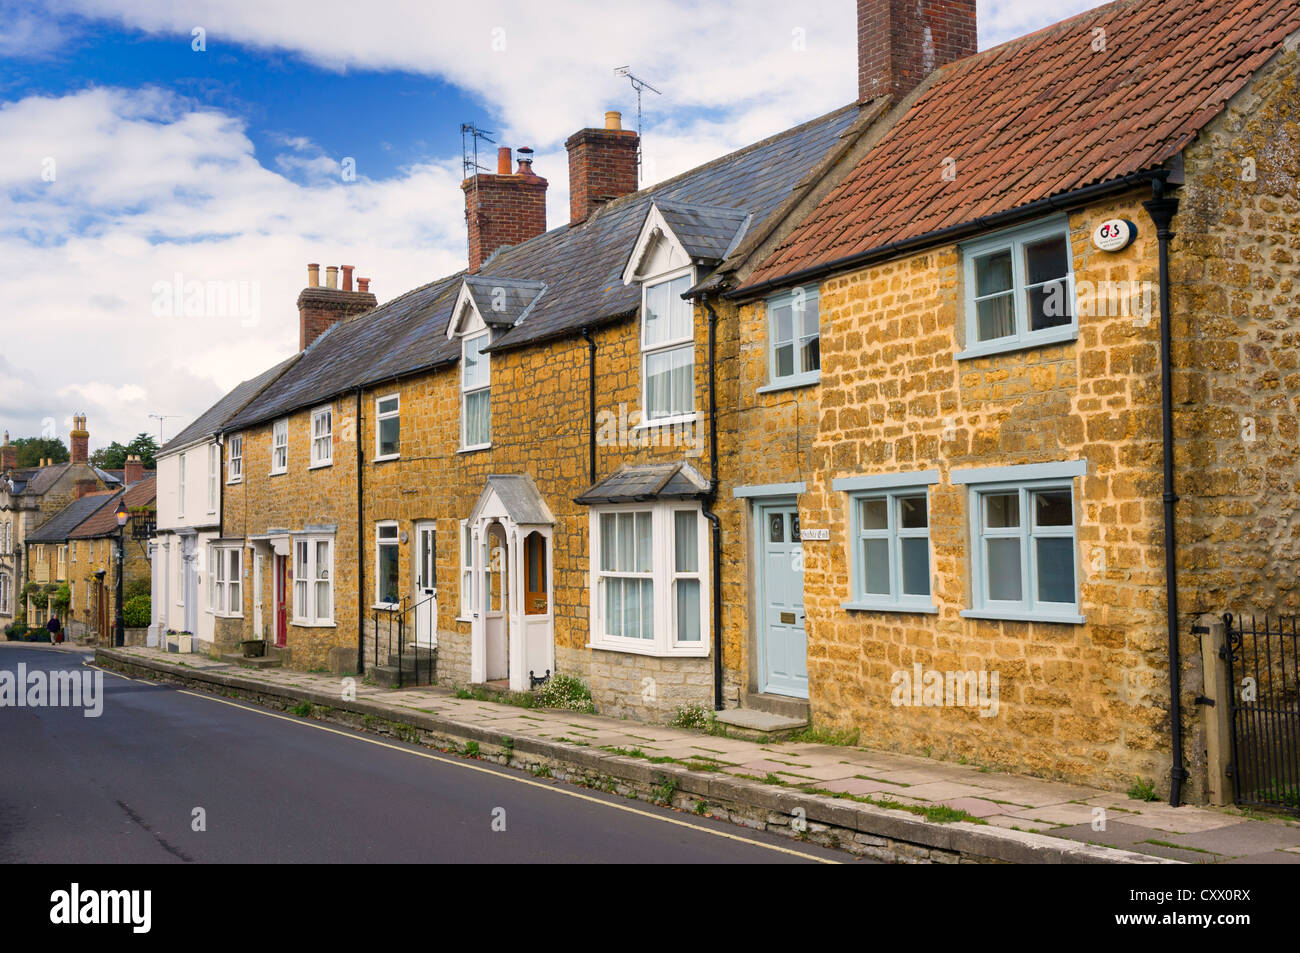 Row of old terraced houses in Castle Cary, Somerset, UK - Stock Image